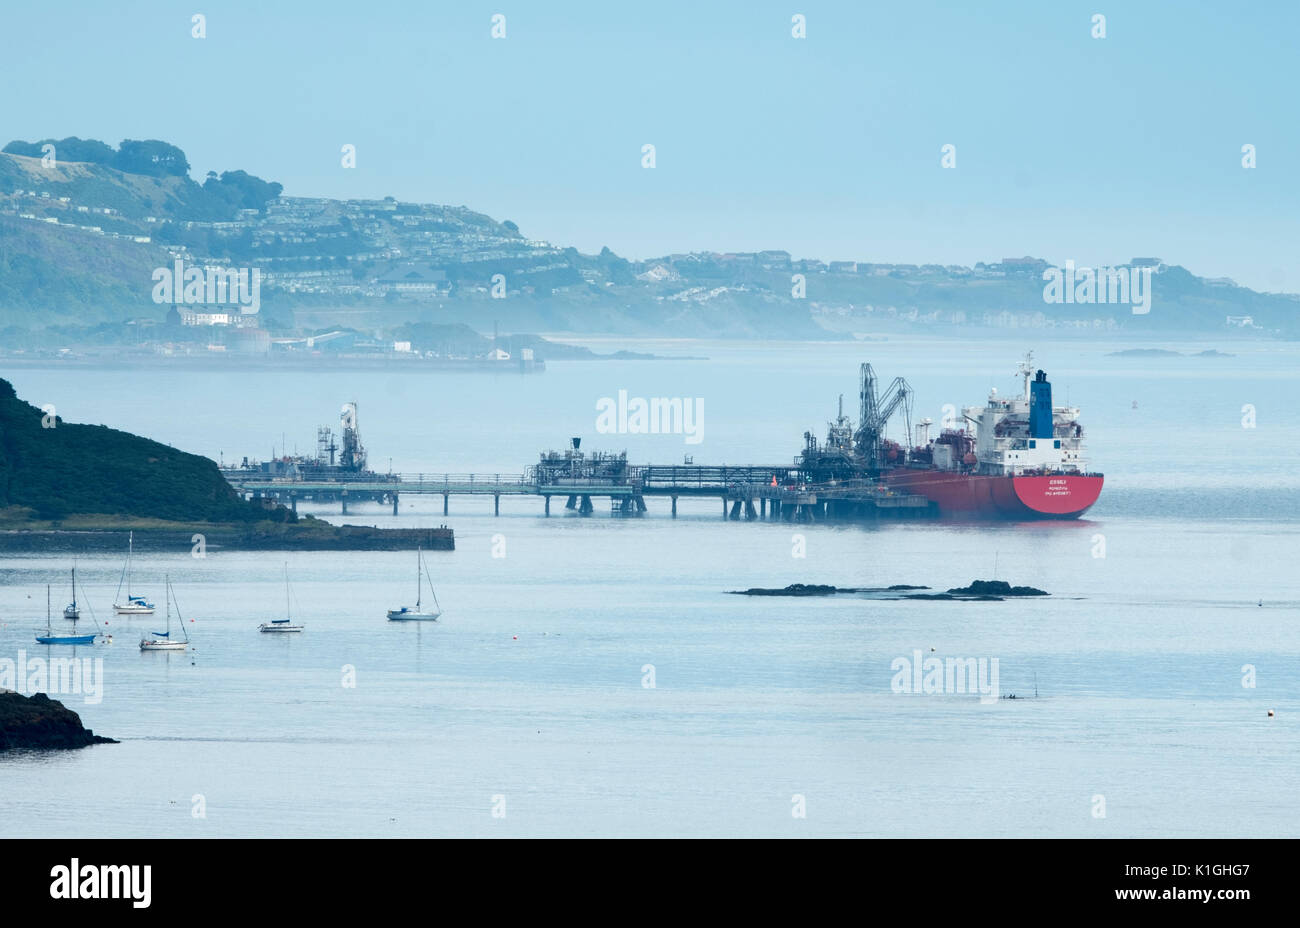 The Liberian registered LPG tanker Essex moored at Braefoot Bay Marine Terminal, Firth of Forth, Scotland. - Stock Image